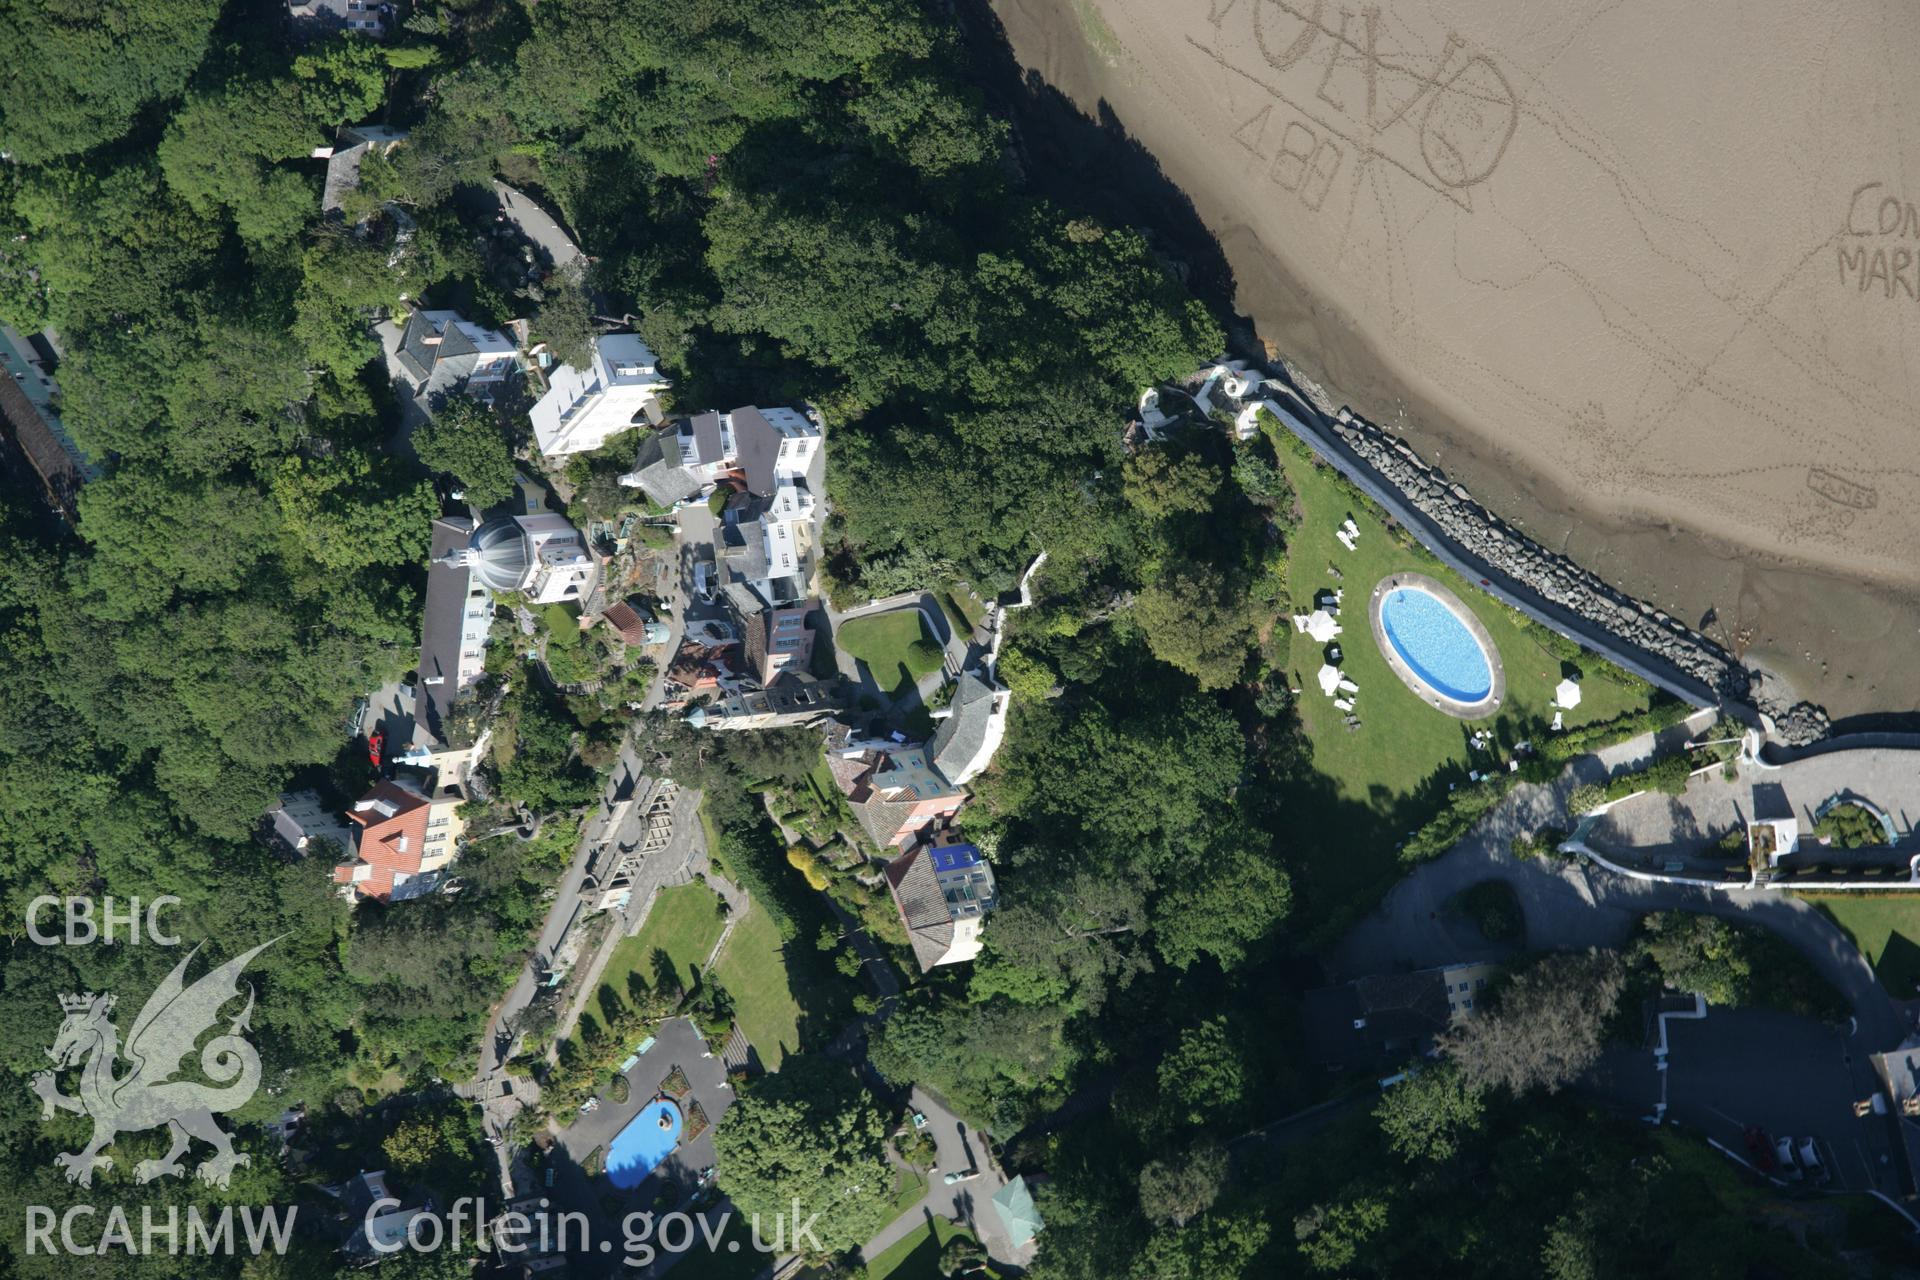 RCAHMW digital colour oblique photograph of Portmeirion viewed from the south. Taken on 08/06/2005 by T.G. Driver.